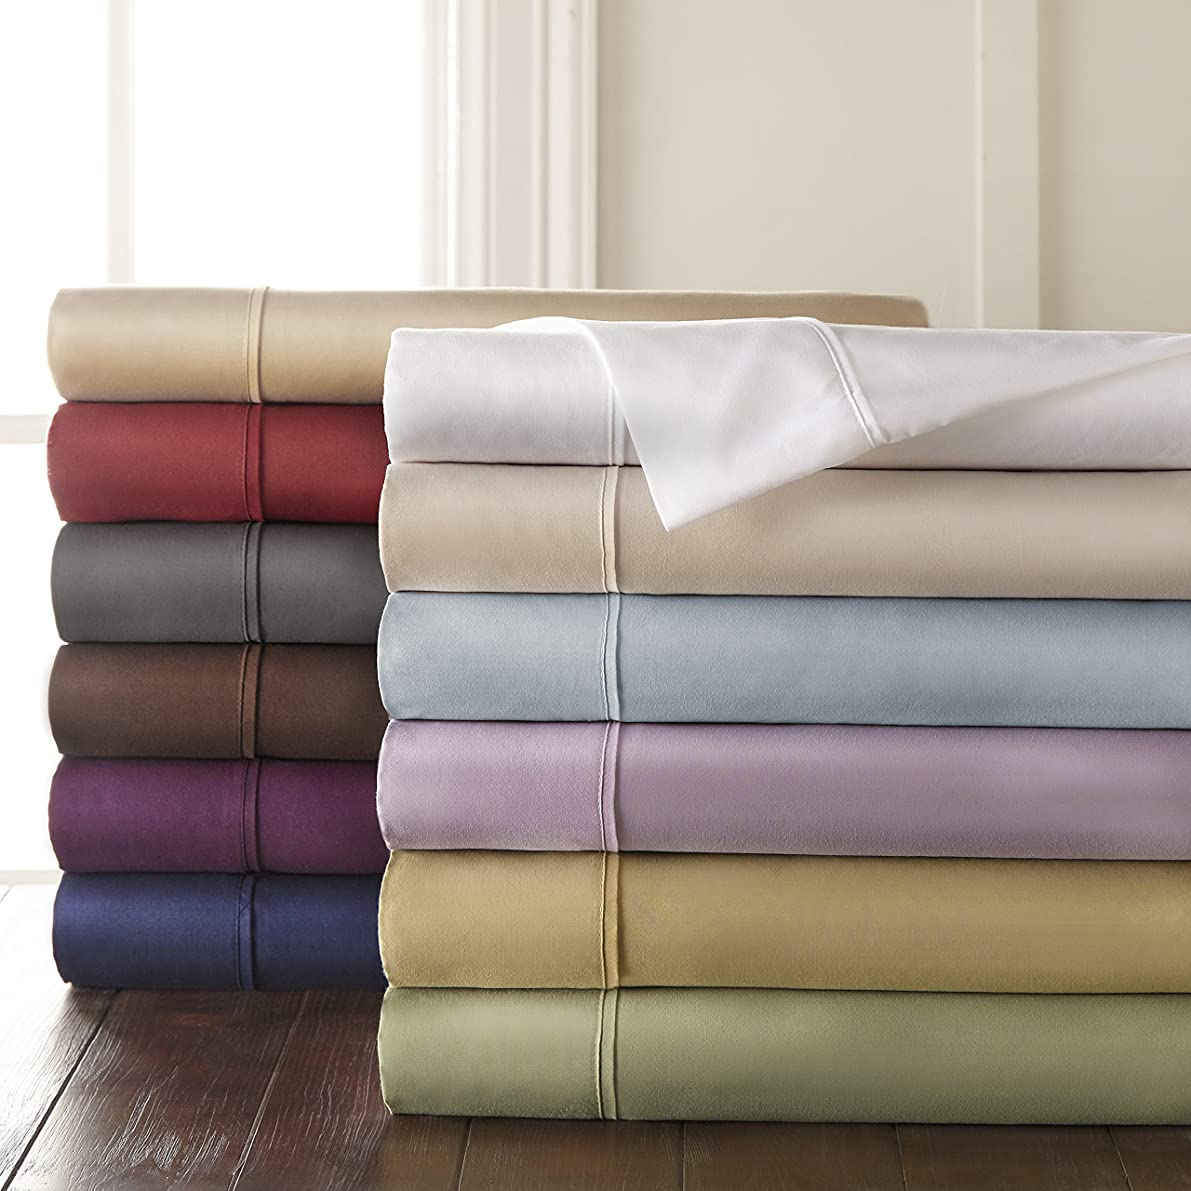 HC Collection 1500 Thread Count Egyptian Quality 2pc Set of Pillow Cases, Silky Soft & Wrinkle Free (ALL COLORS/SIZES)-King Size, White ybljsxj01